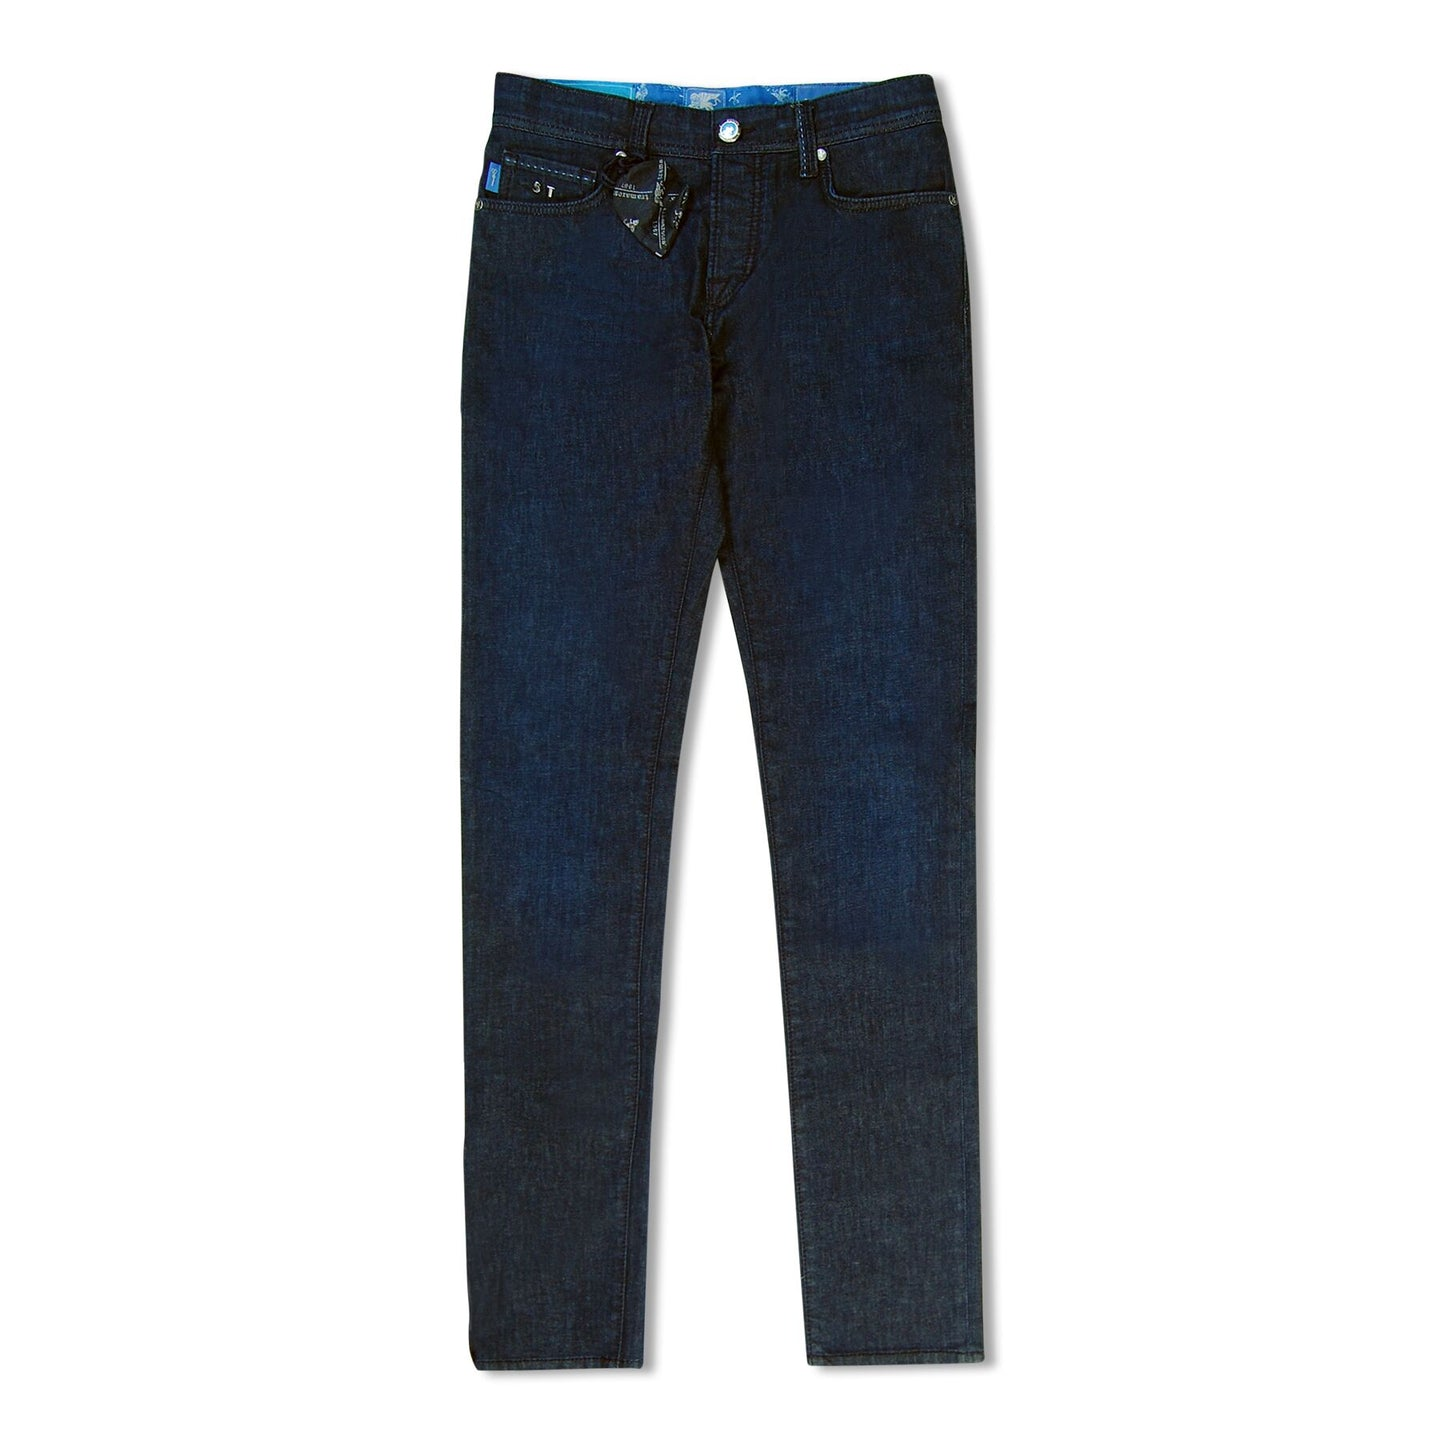 Tramarossa Light Collection Jeans - Dark Denim